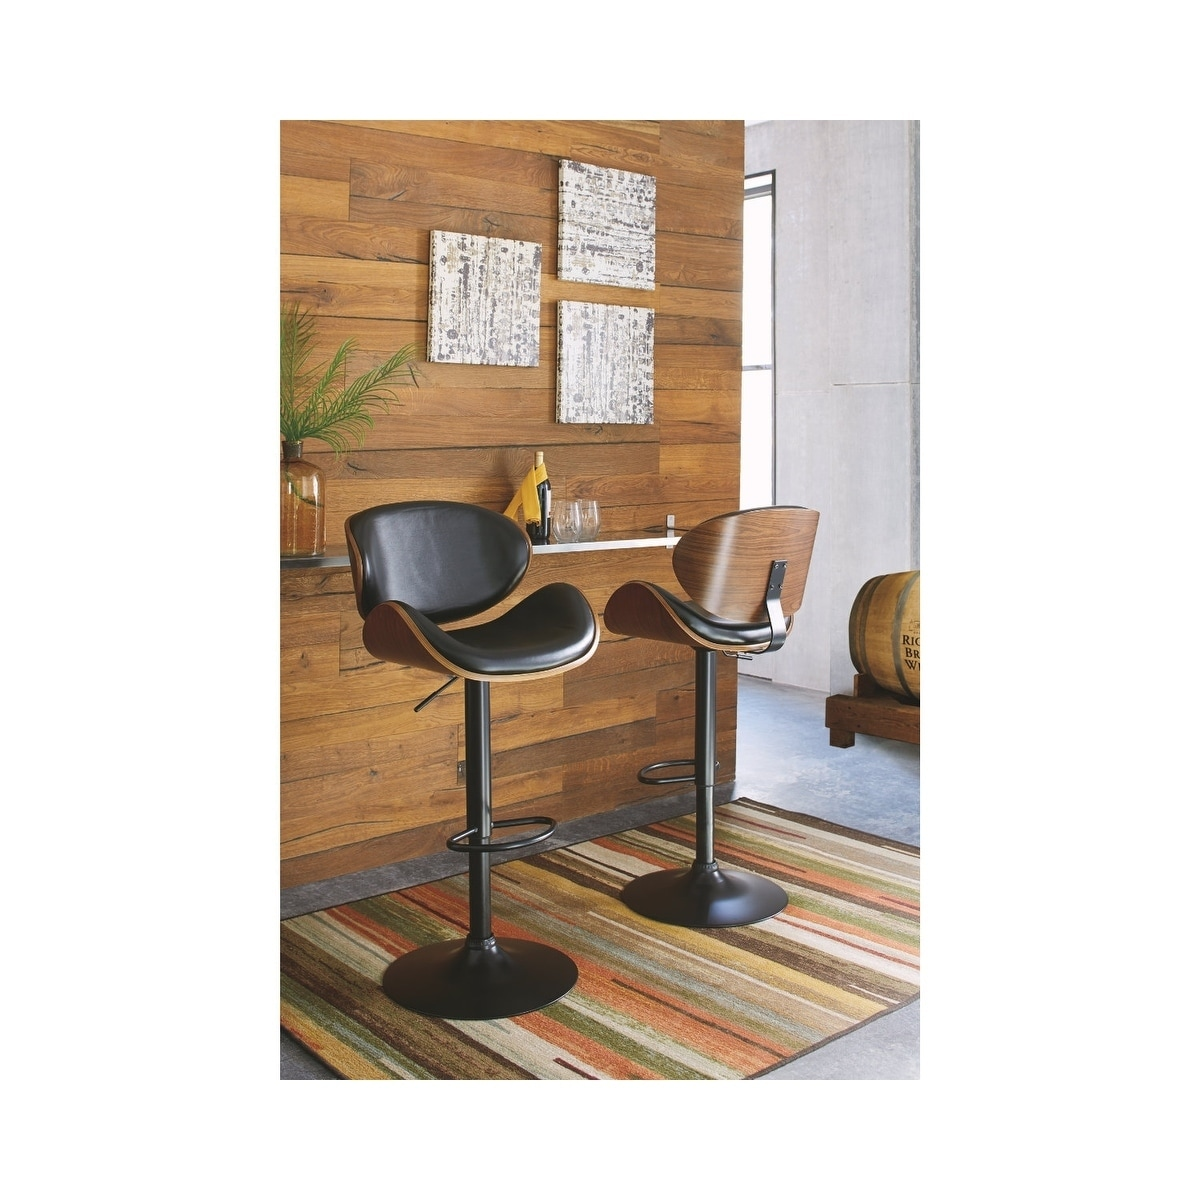 Flavor In American Antique Industrial Design Metal Adjustable Height Bar Stool Chair Fragrant